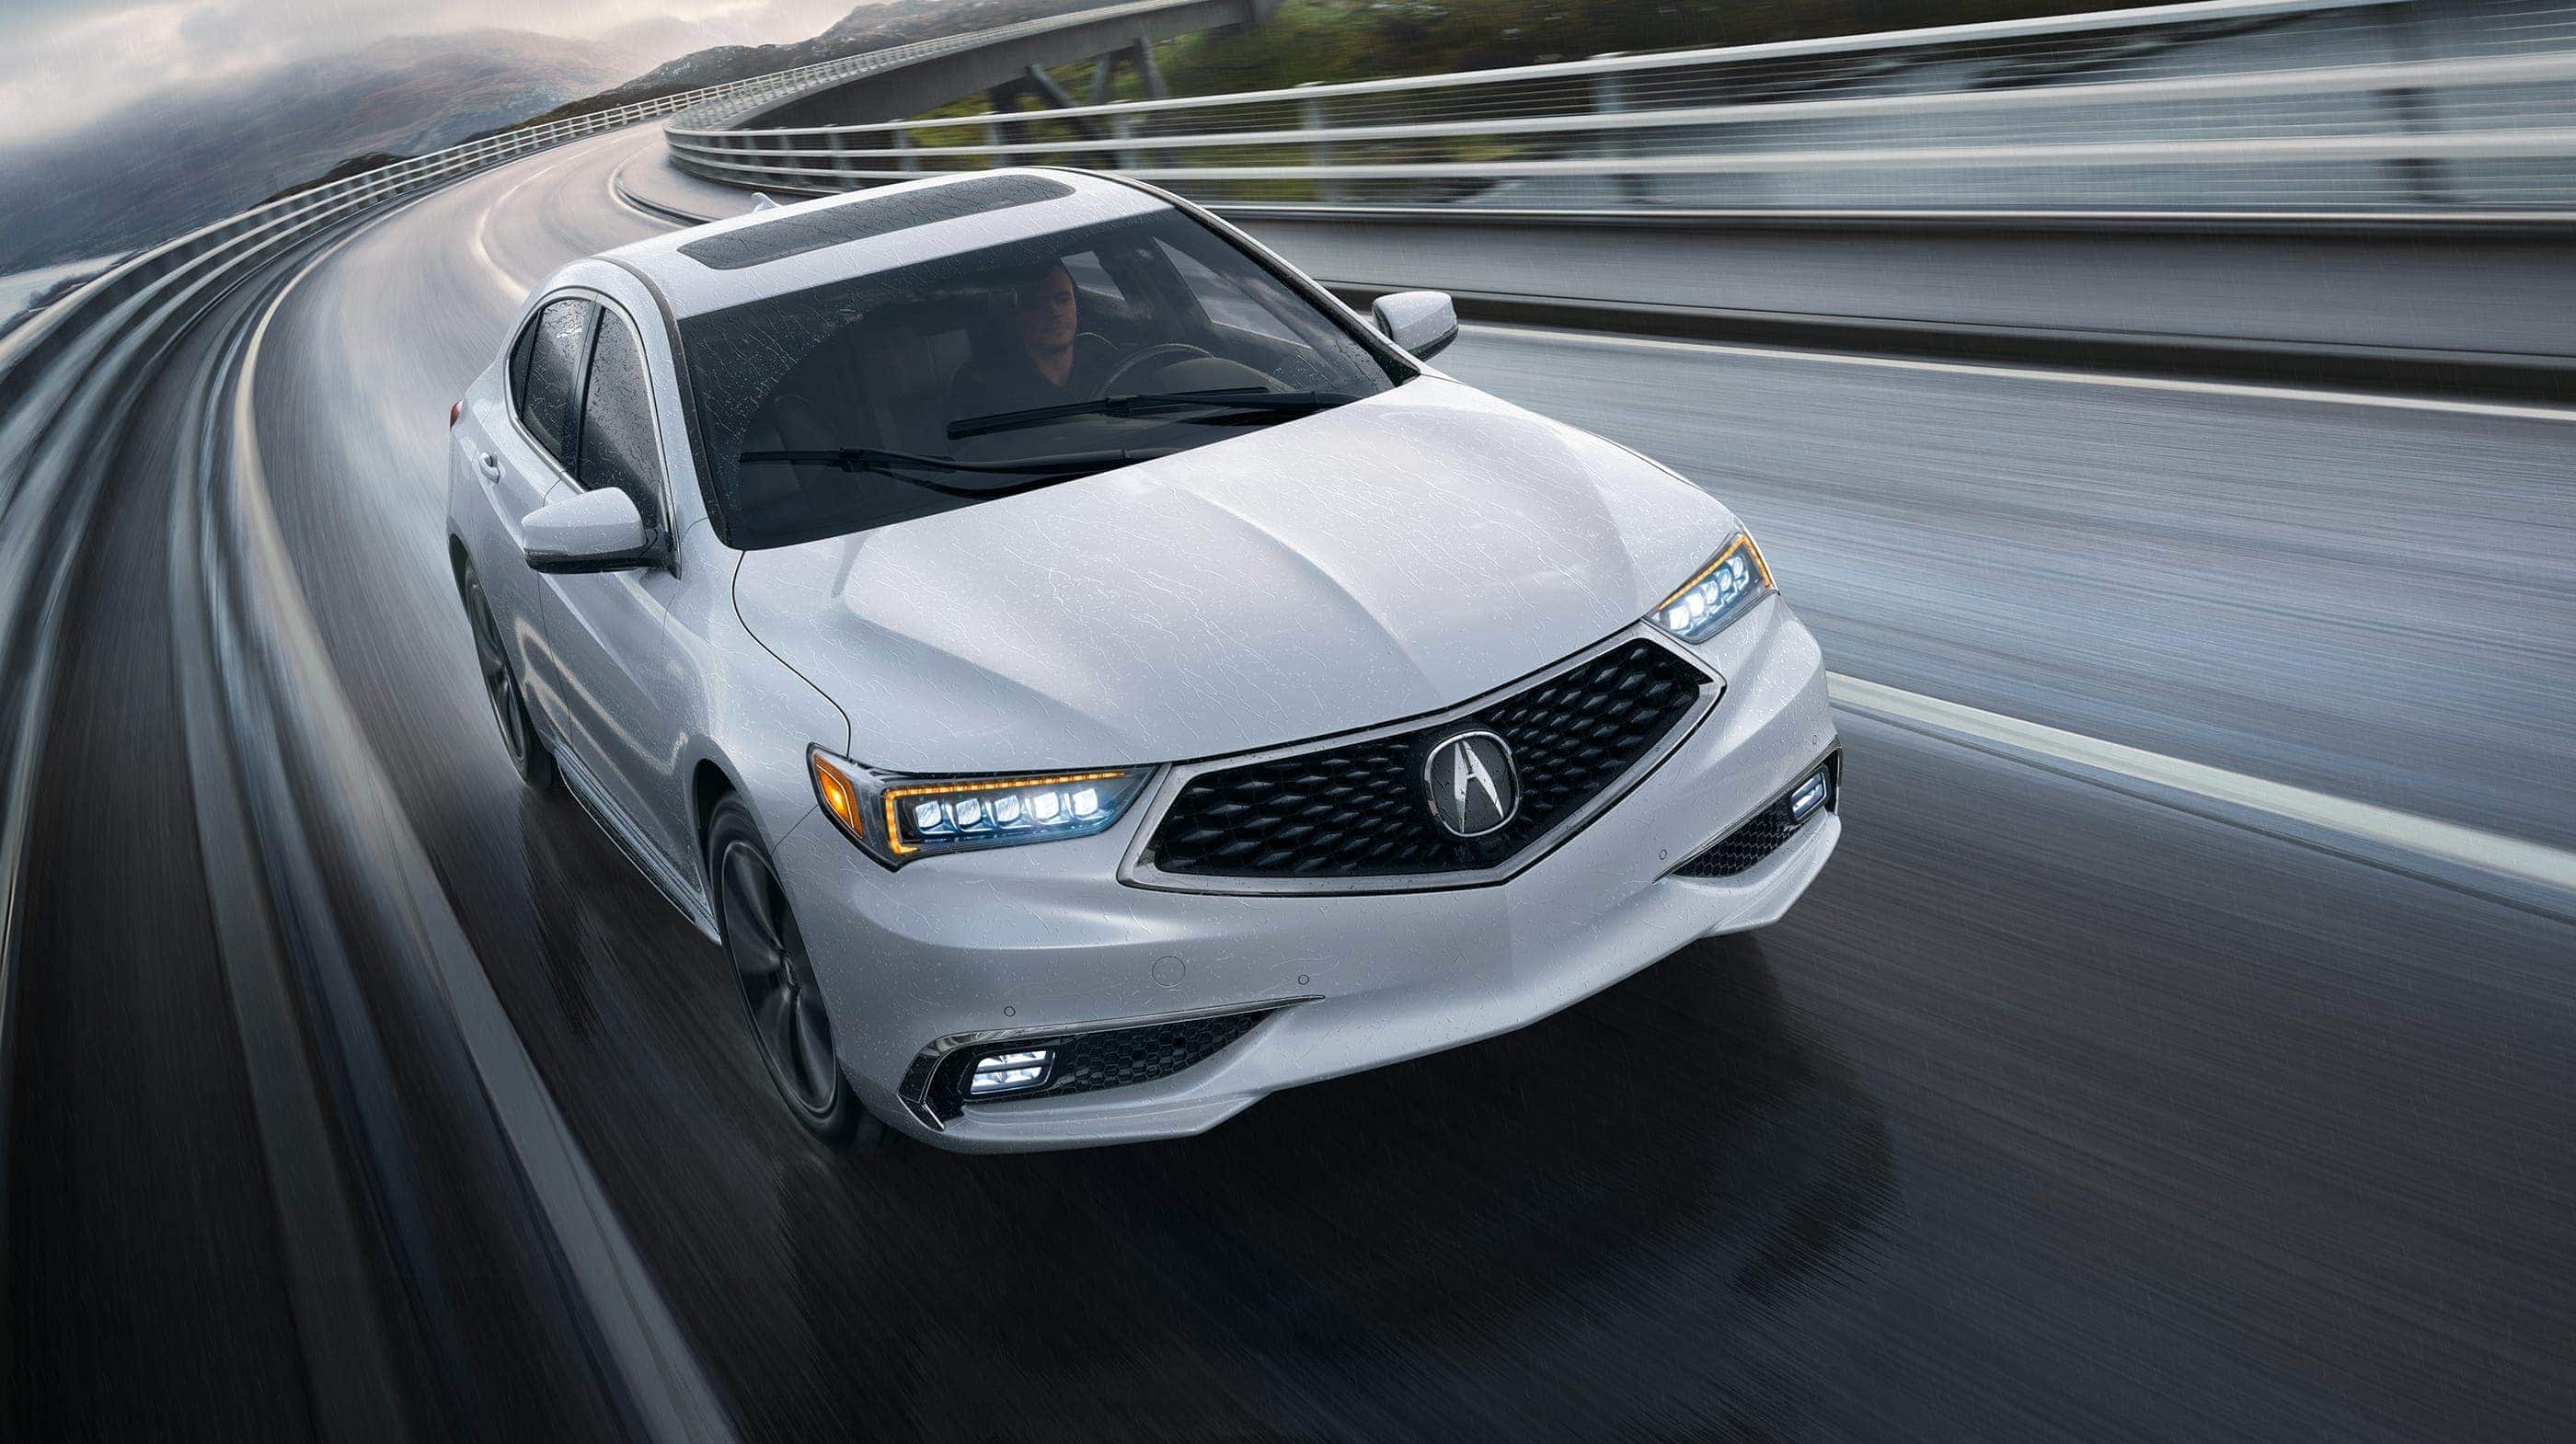 2020 Acura TLX for Sale near Schererville, IN